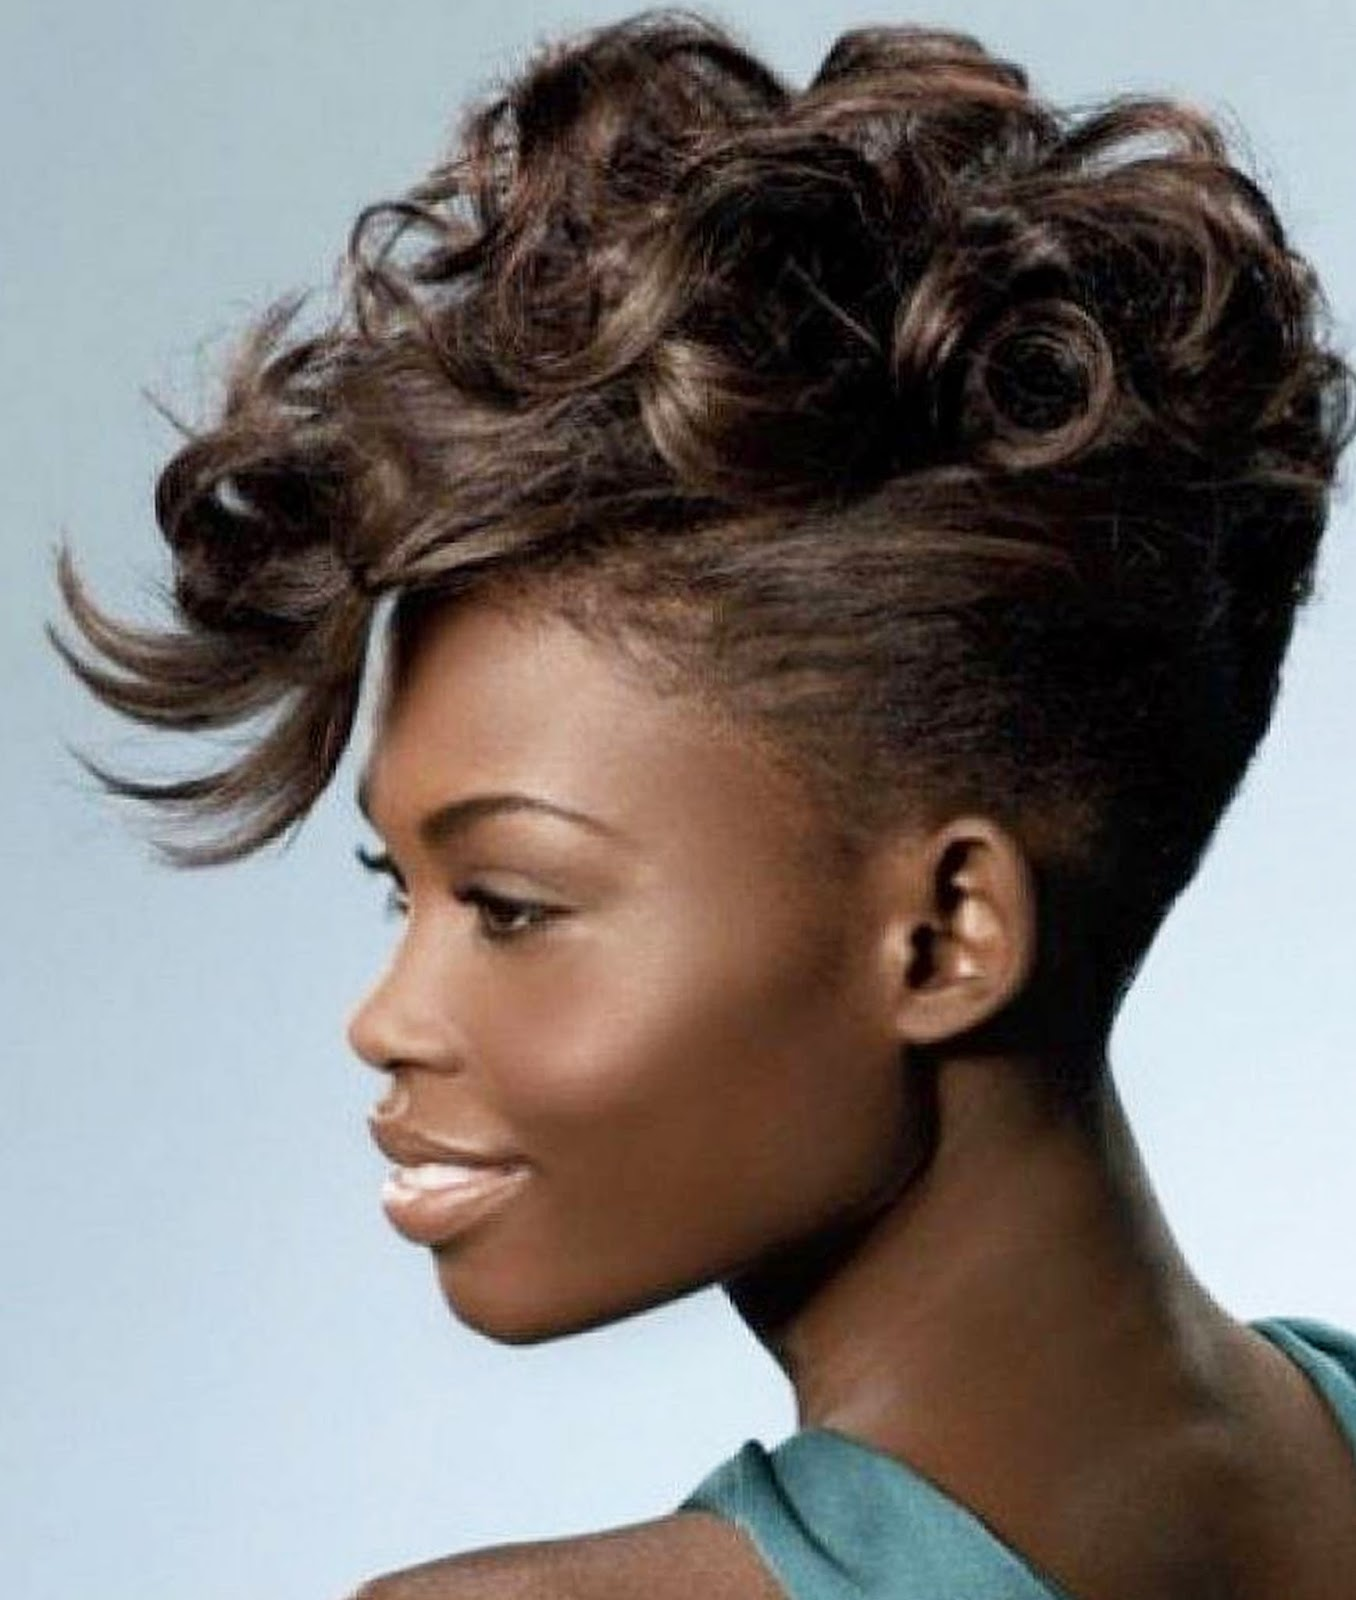 Stunning short French haircut Oval face African American